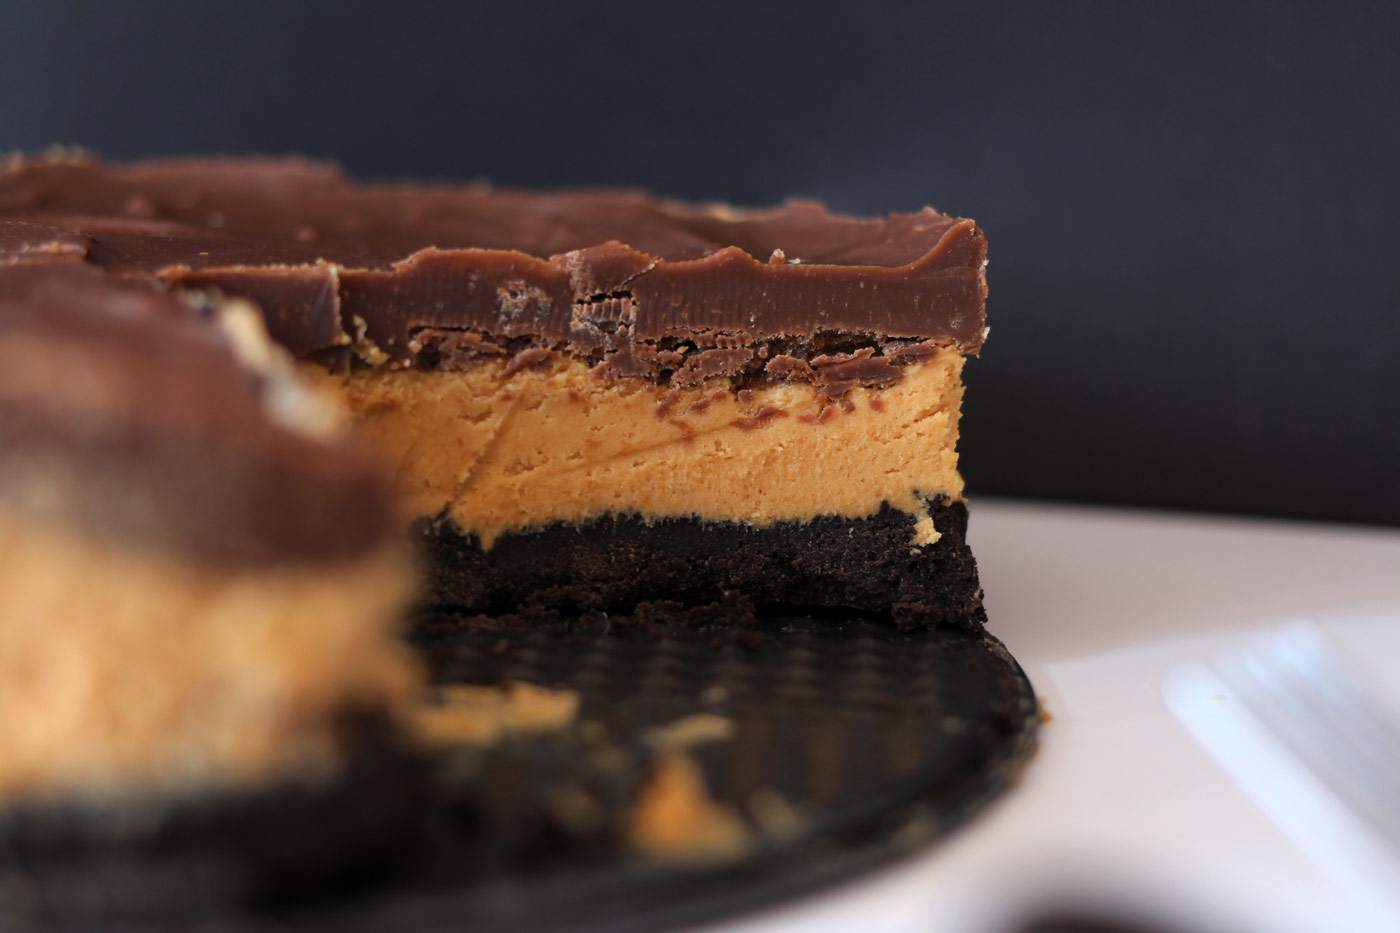 peanut-butter-oreo-chocolate-pie-cake-triple-layer-dessert-1